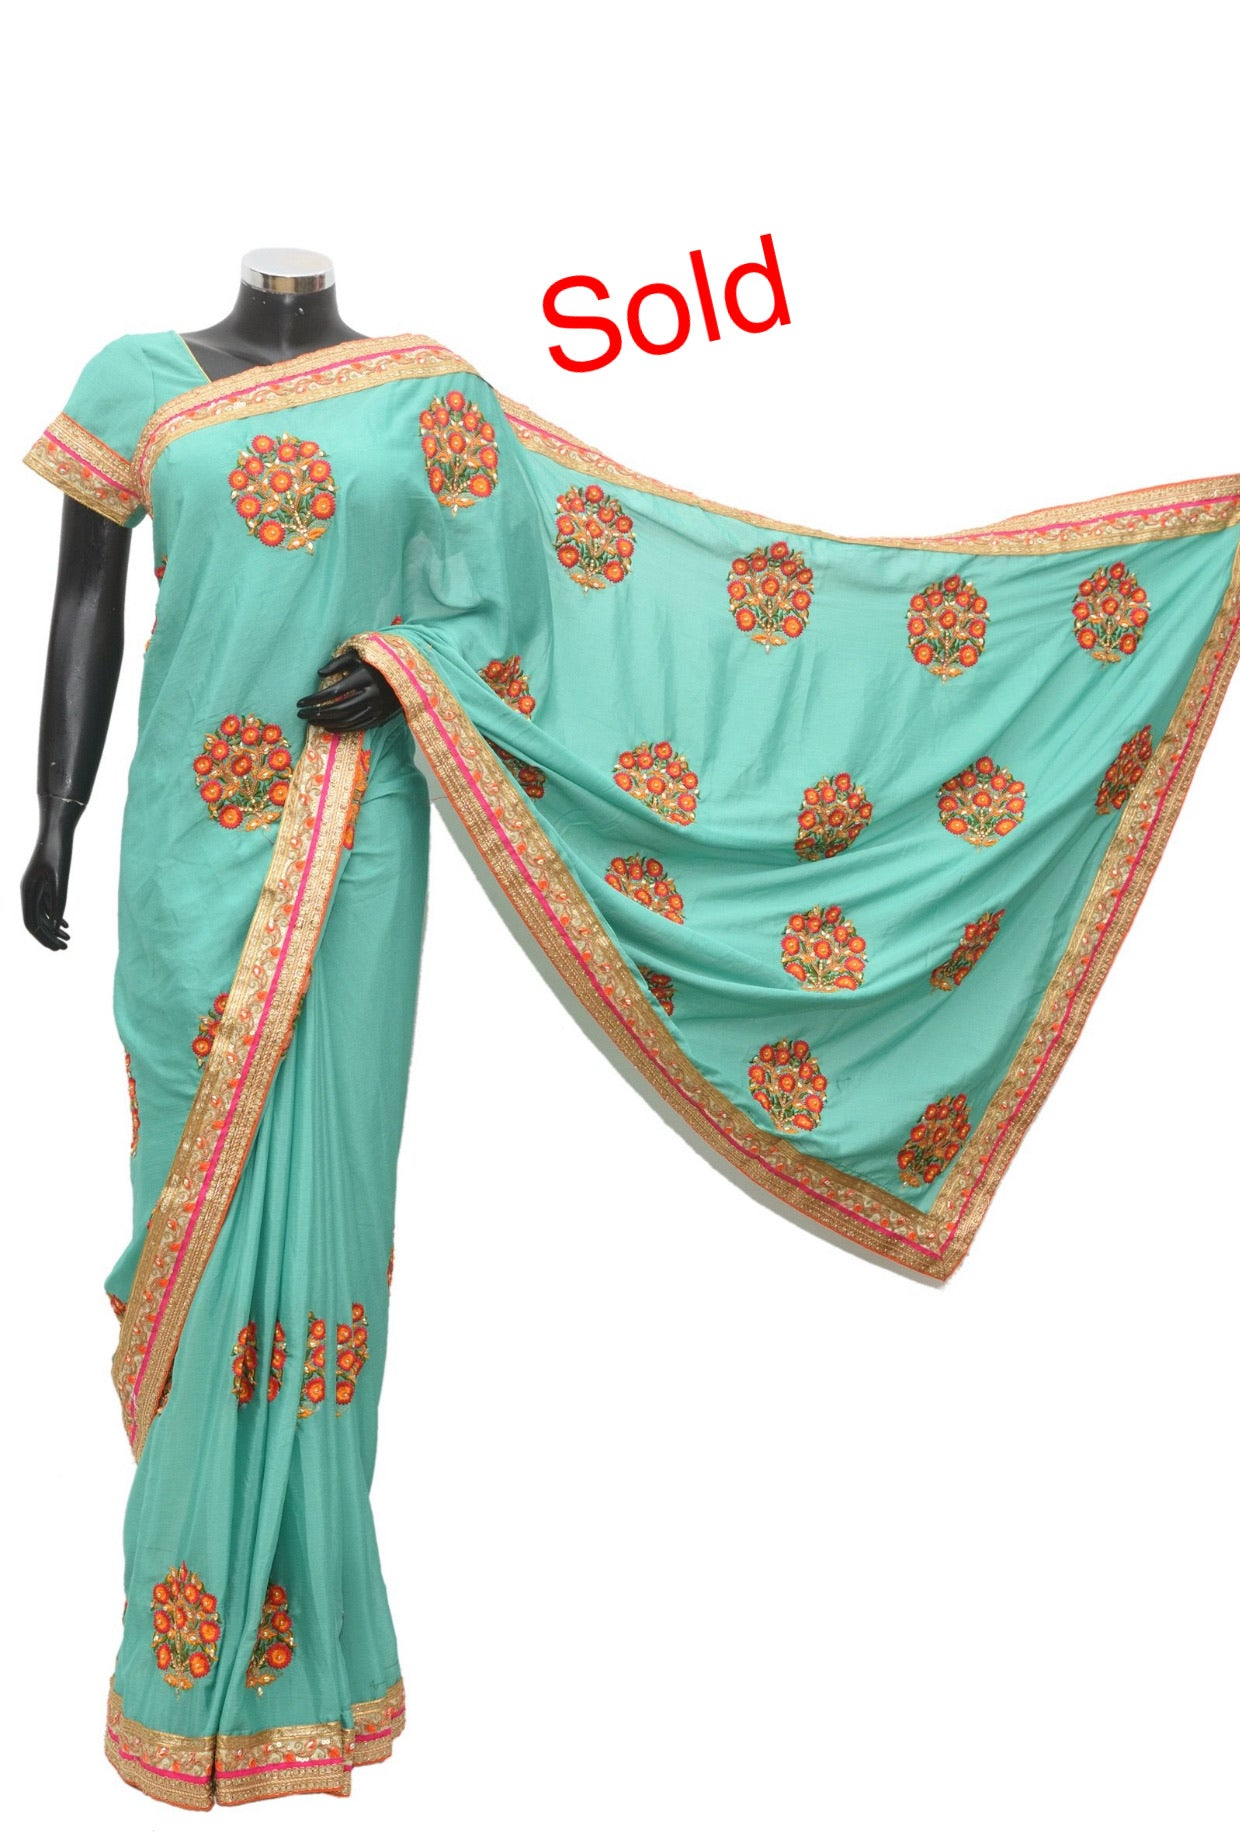 A mint green color silk saree #fdn912-331